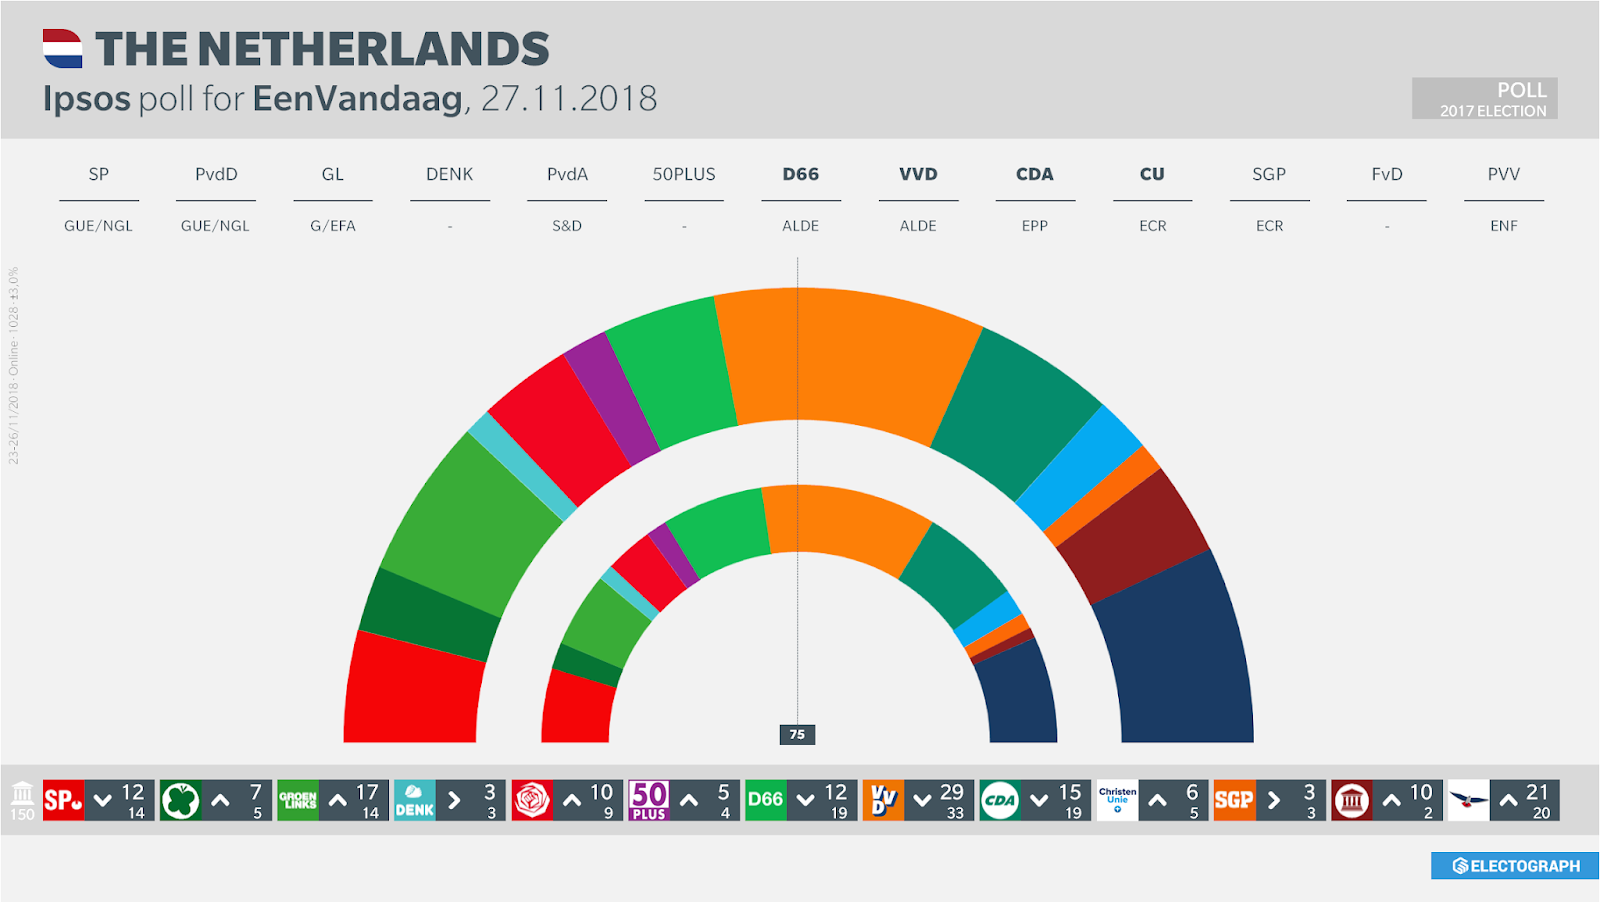 THE NETHERLANDS: Ipsos poll chart, 27 November 2018